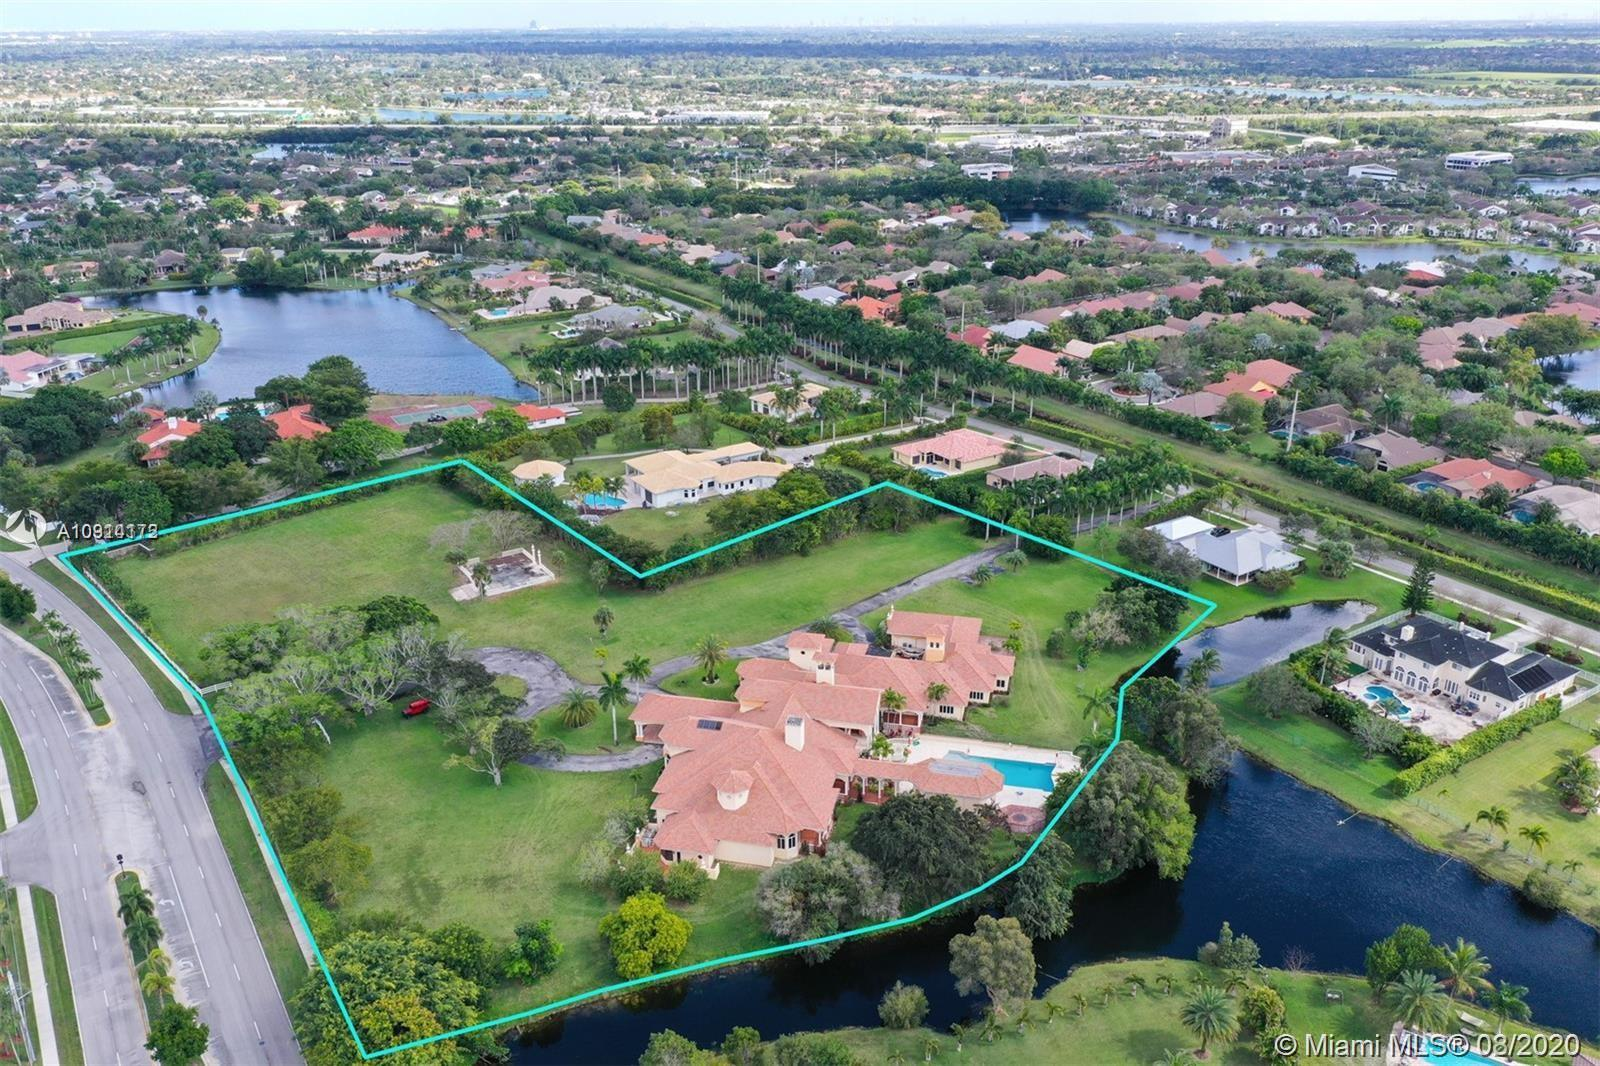 THIS MANSION IS ONE OF THE LARGEST AND HAS THE POTENTIAL TO BE THE MOST SPECTACULAR IN THE CITY OF WESTON. ENTERTAINERS PARADISE! 'EXOTIC CAR SHOW HOSTED ON PROPERTY/120 CARS STAGED ON DRIVEWAY/NOT ON THE FRESHLY MANICURED LAWN  6.3 ACRES; 14,294 SQ FT LIV; 19,269 SQ FT ADJ TON OF EQUITY FOR THE NEW HOMEOWNER! LUXURY FINISHES: GRANDEUSE 400 CAPACITY BALLROOM; THEATER; IMPACT WINDOWS; IMPORTED CUSTOM DOORS FR SPAIN; FULL SERVICE INTERIOR BAR WITH FIREPLACE; EXERCISE ROOM; CONTEMPORARY KITCHEN WITH HIGH END FINISHES AND APPLIANCES. LONG MAJESTIC HALLWAY; IMPRESSIVE CHANDELIERS; RESORT STYLE POOL WITH SWIM-UP BAR. FULL SUMMER KITCHEN; HALF BATHROOM AND OUTDOOR SHOWER. PLEASE CALL LISTING AGENT TO SCHEDULE SHOWINGS, DRASTIC PRICE REDUCTION, SELLER HIGHLY MOTIVATED!!!